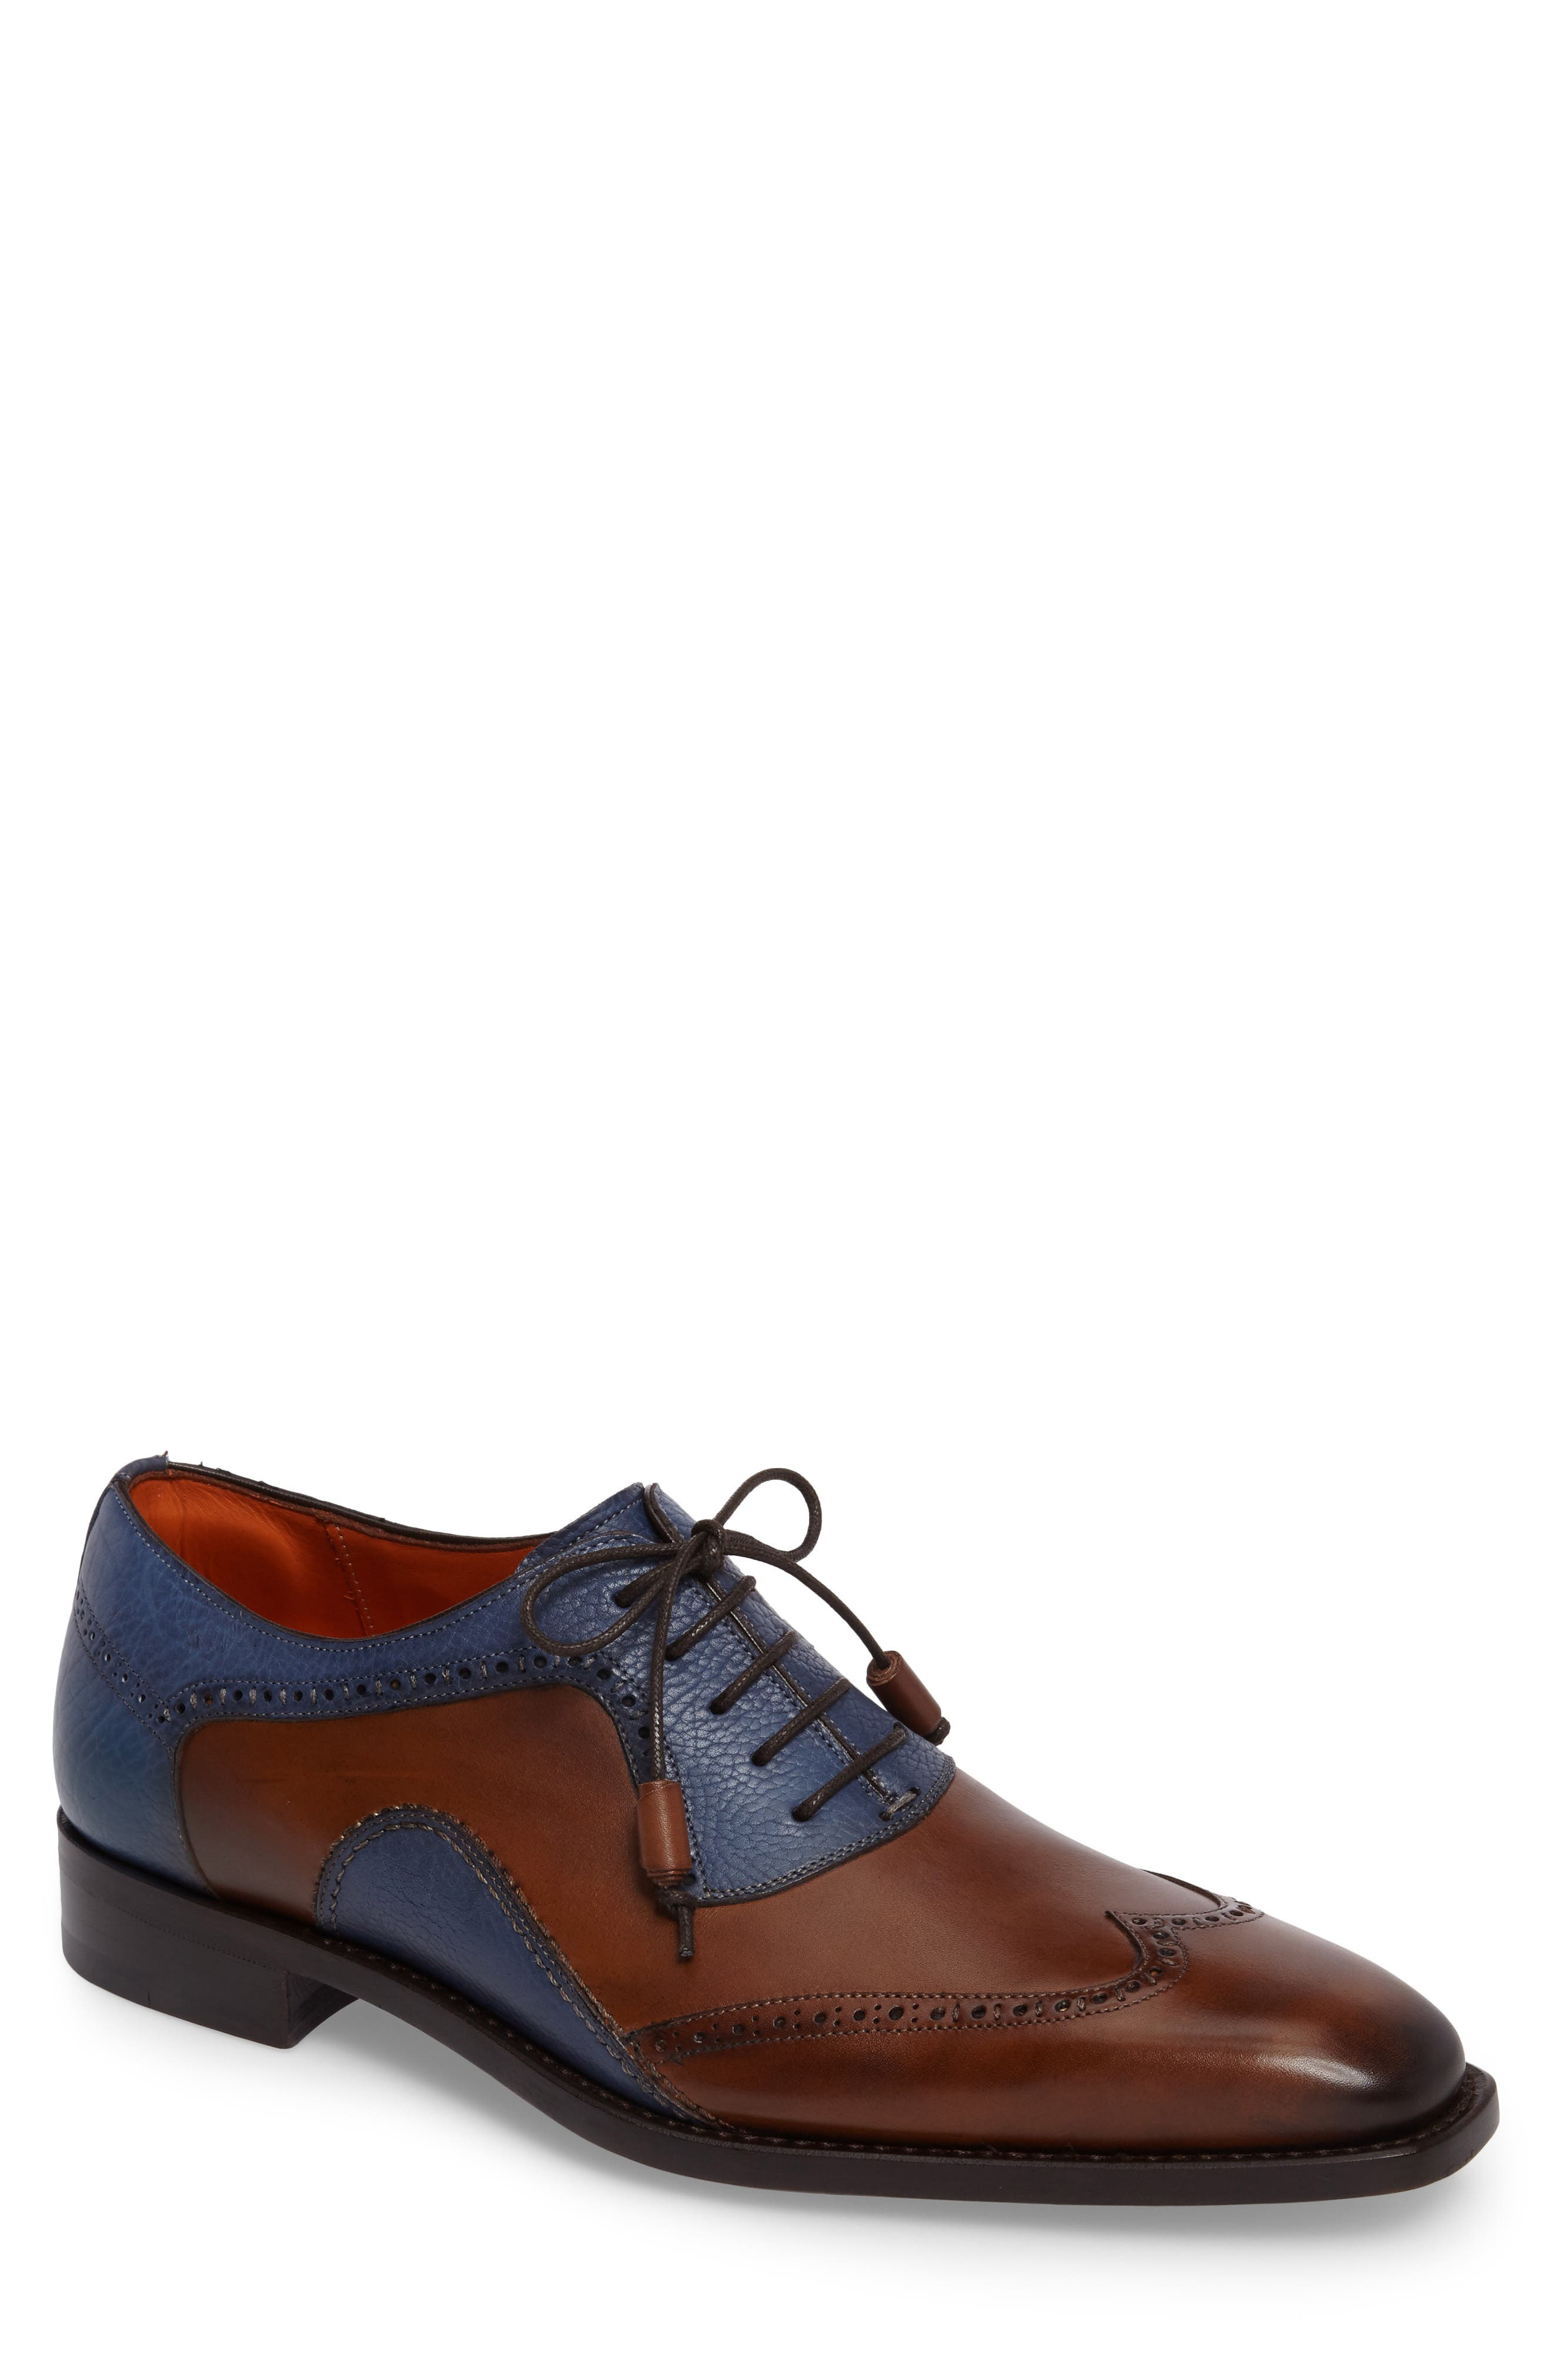 Conil Wingtip,                         Main,                         color, COGNAC/ BLUE LEATHER